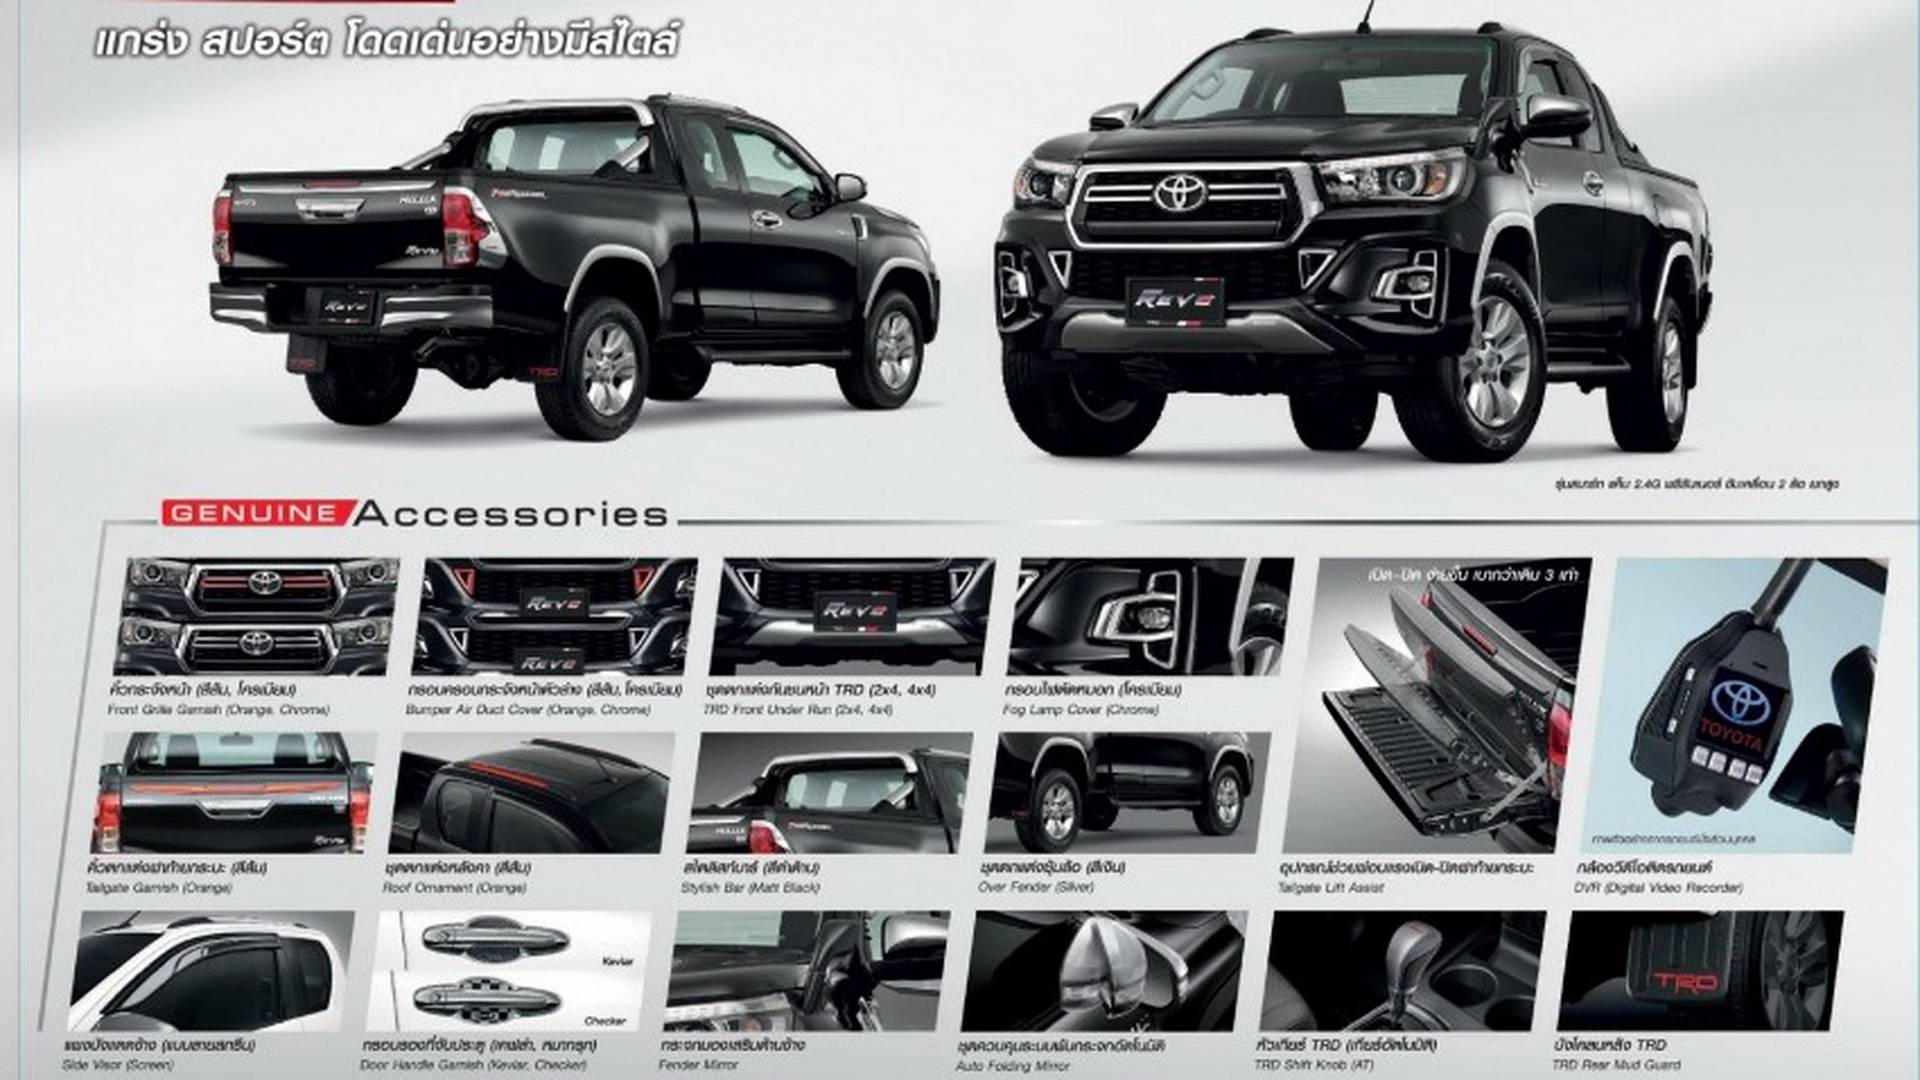 2018-toyota-hilux-facelift (26)